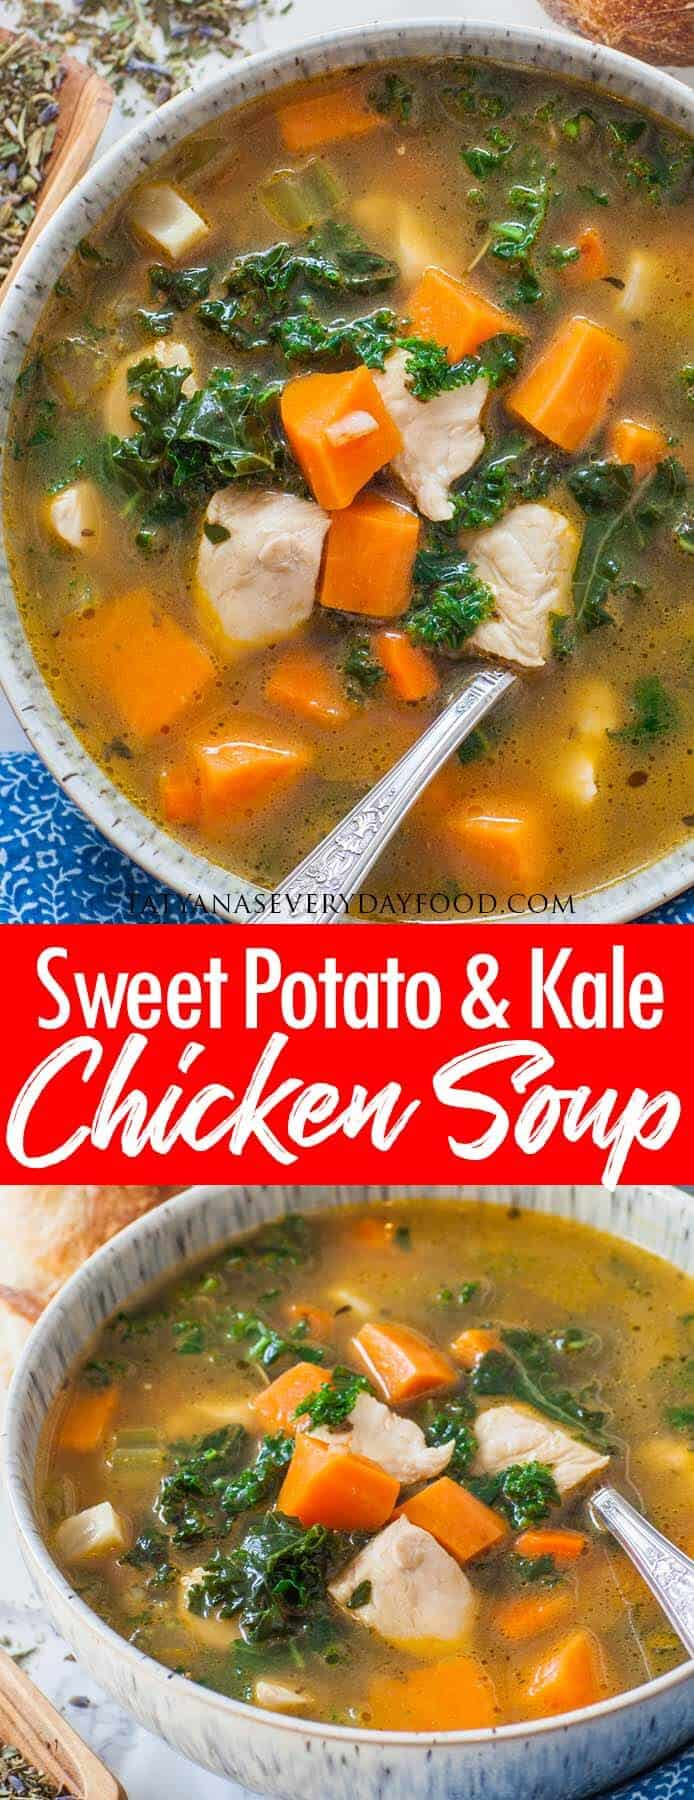 Sweet Potato Kale Chicken Soup video recipe